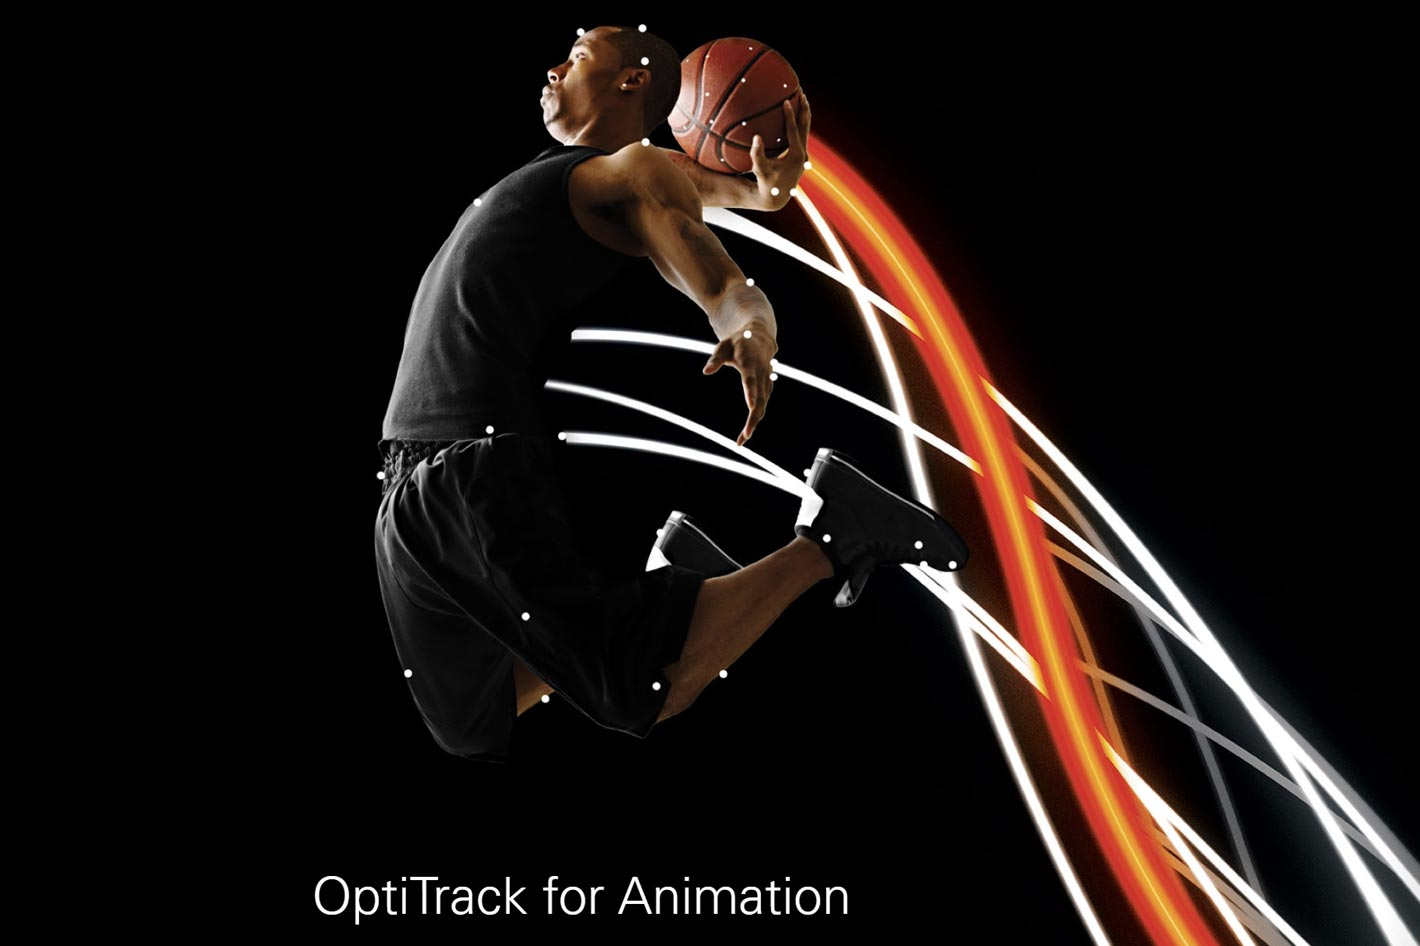 Broadcast and live shows increasing demand for 3D motion capture